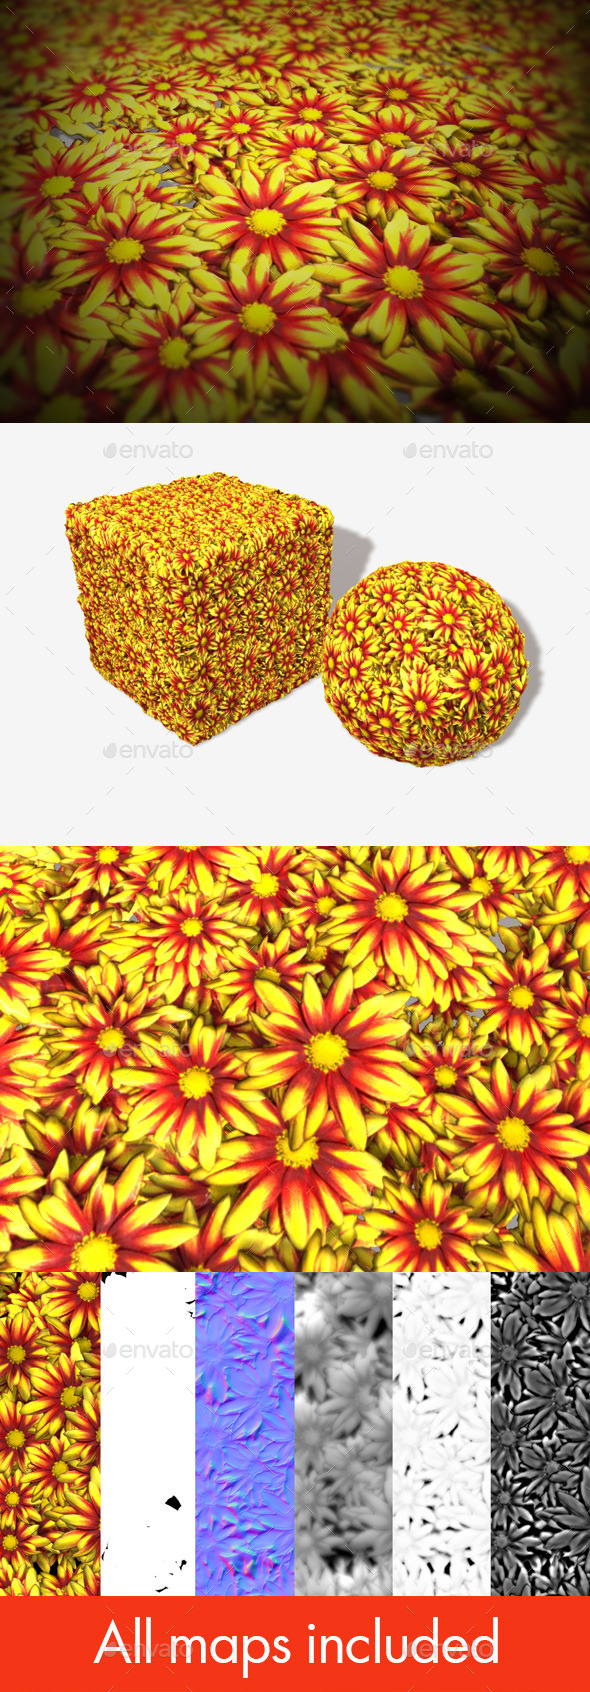 Yellow and Red Flowers Seamless Texture - 3DOcean Item for Sale